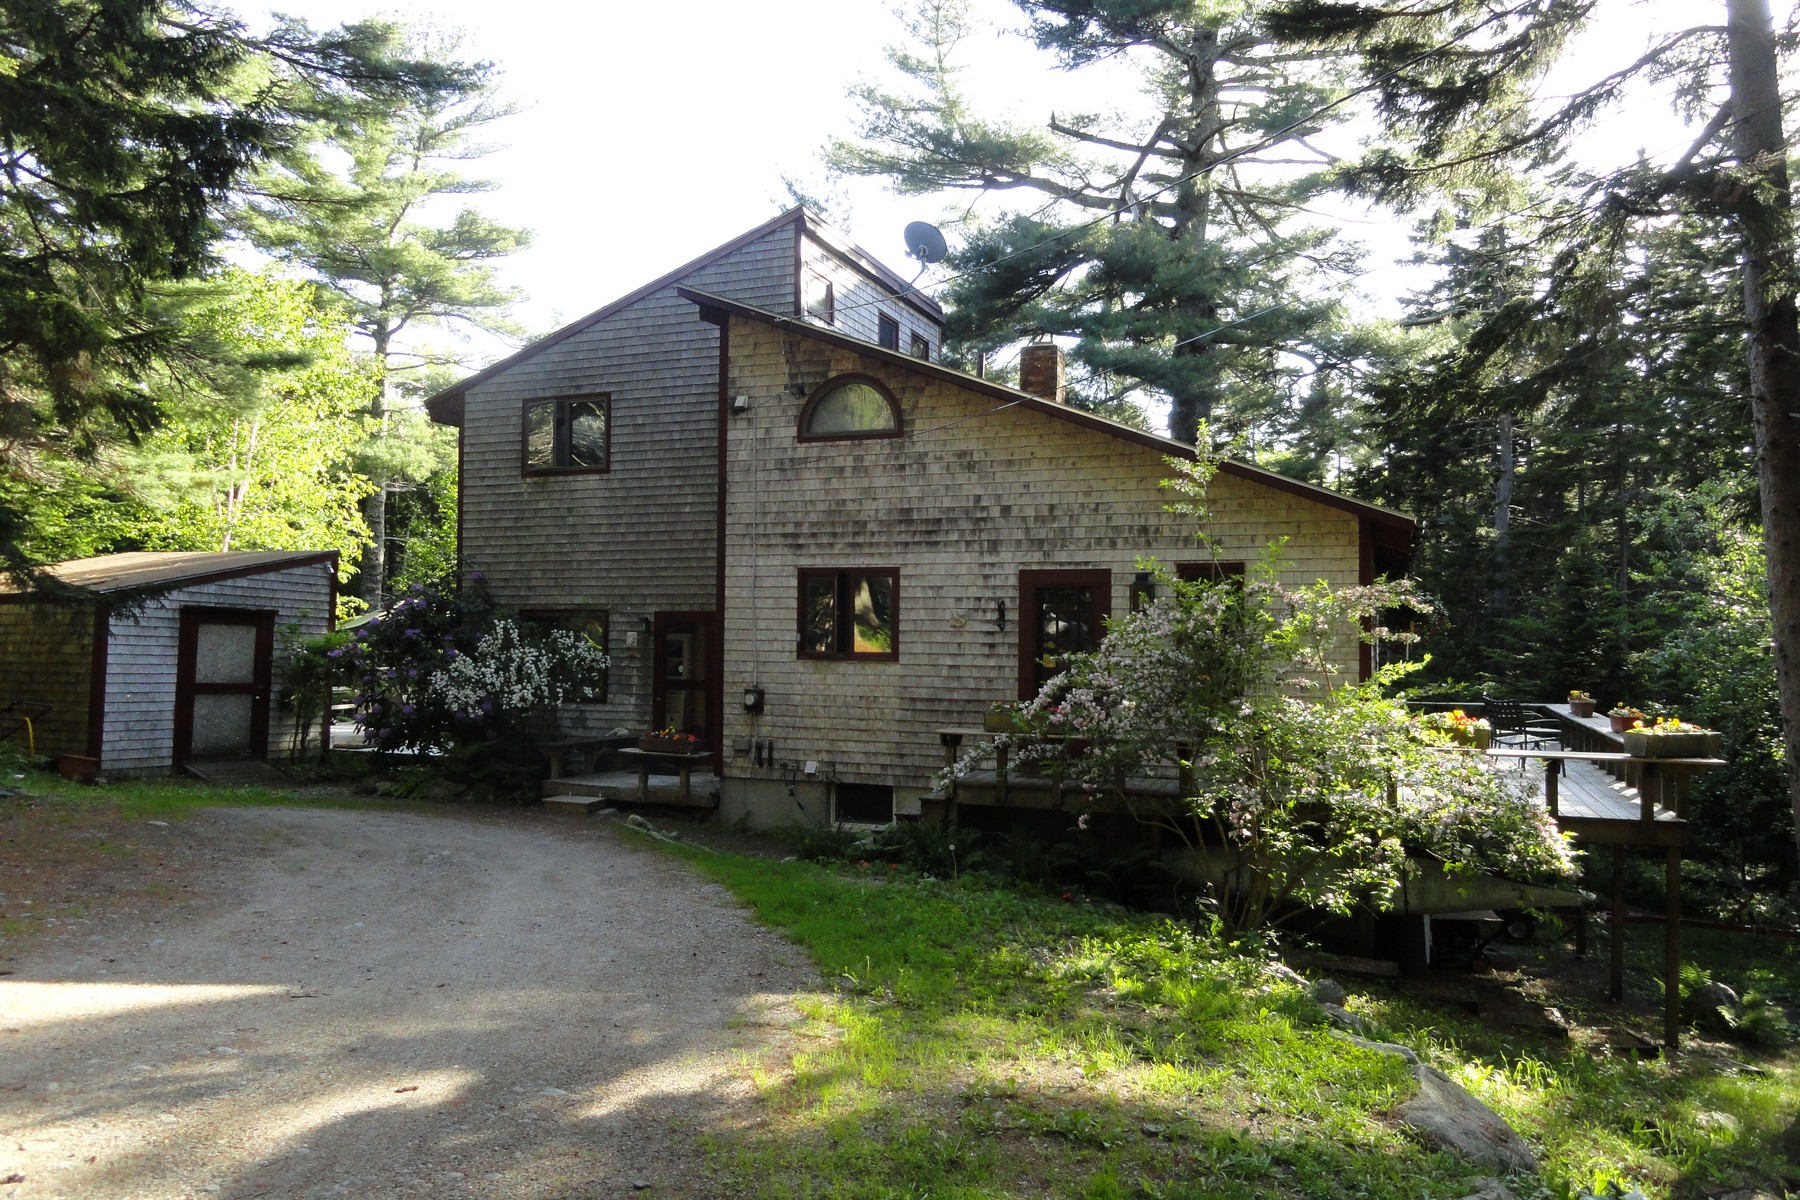 Single Family Home for Sale at Parker Farm Road 51 Parker Farm Road Mount Desert, Maine 04660 United States